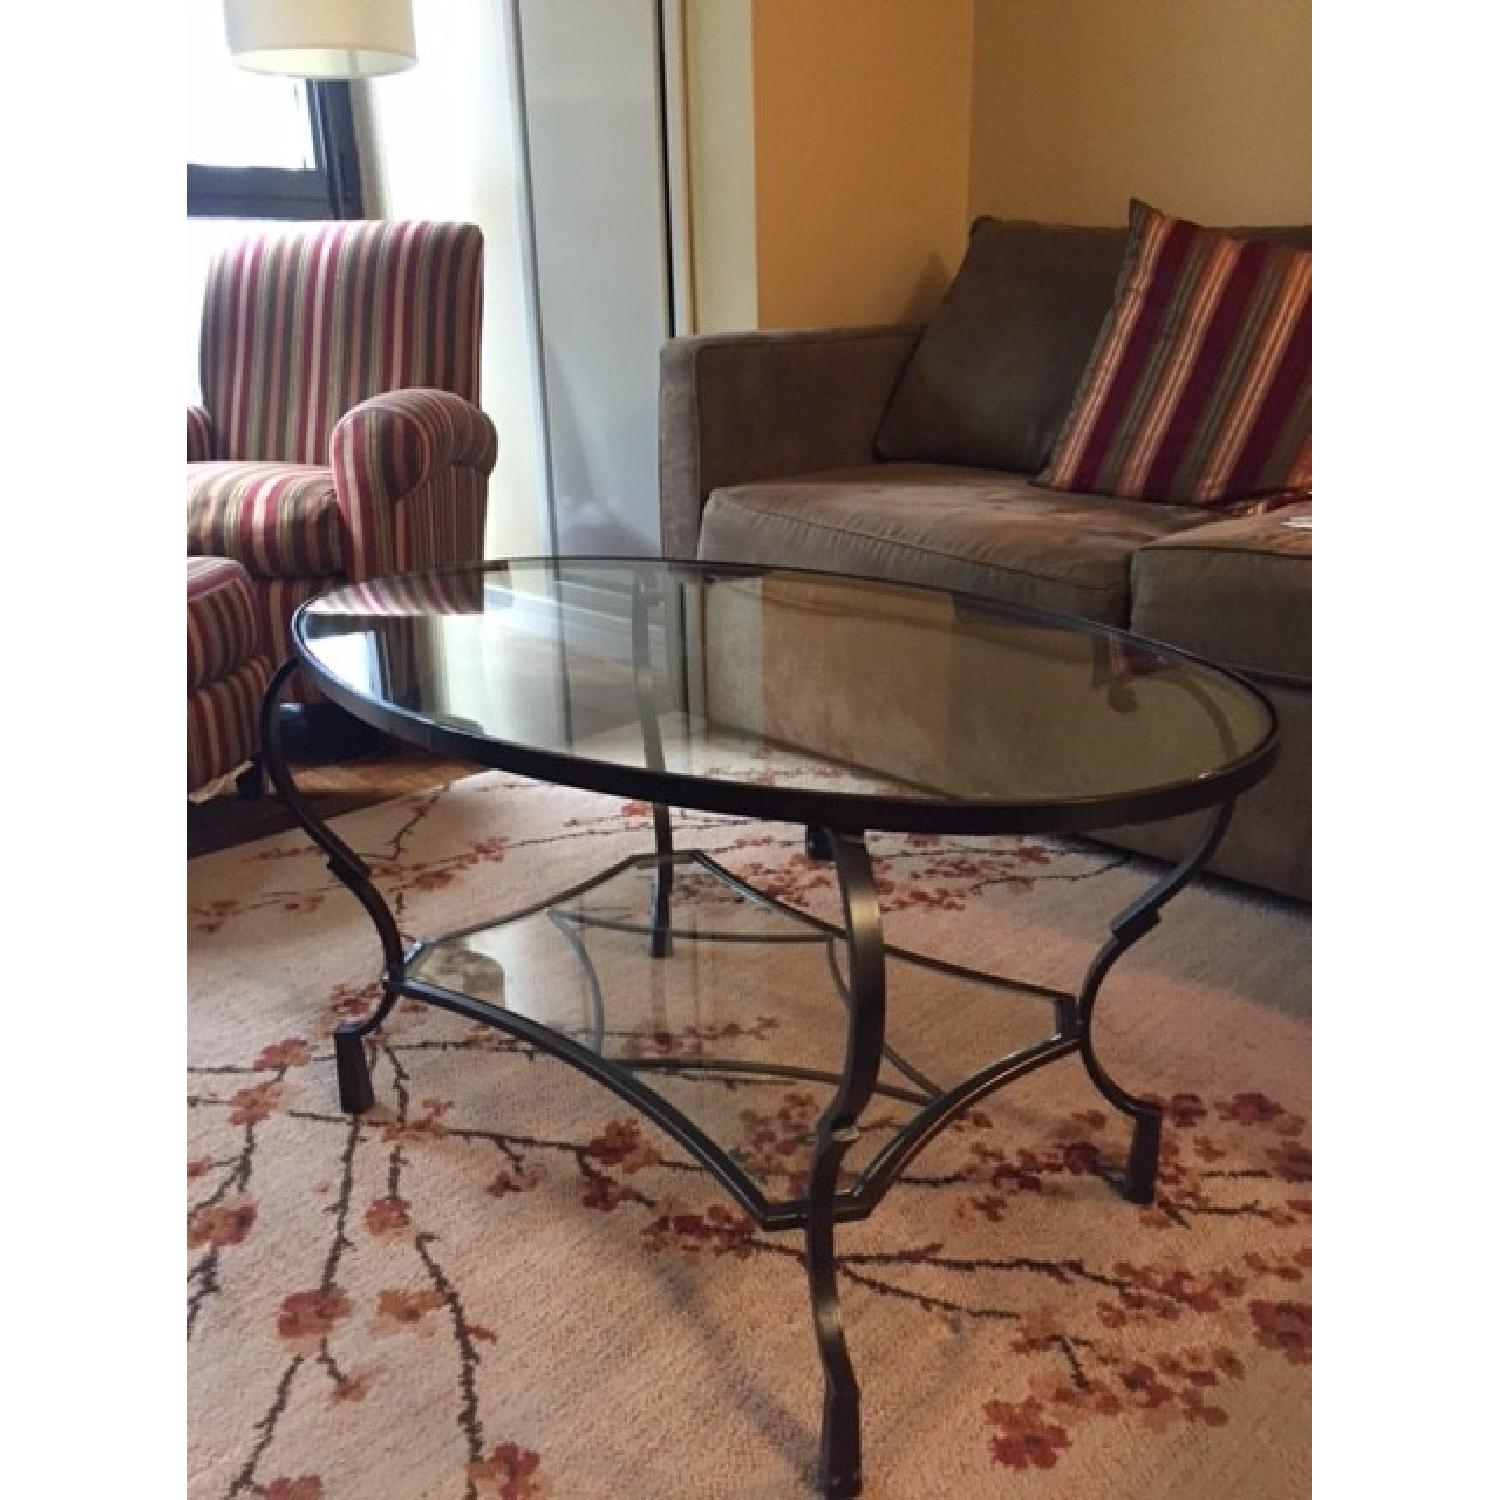 pier 1 chasca collection glass top oval coffee table - aptdeco